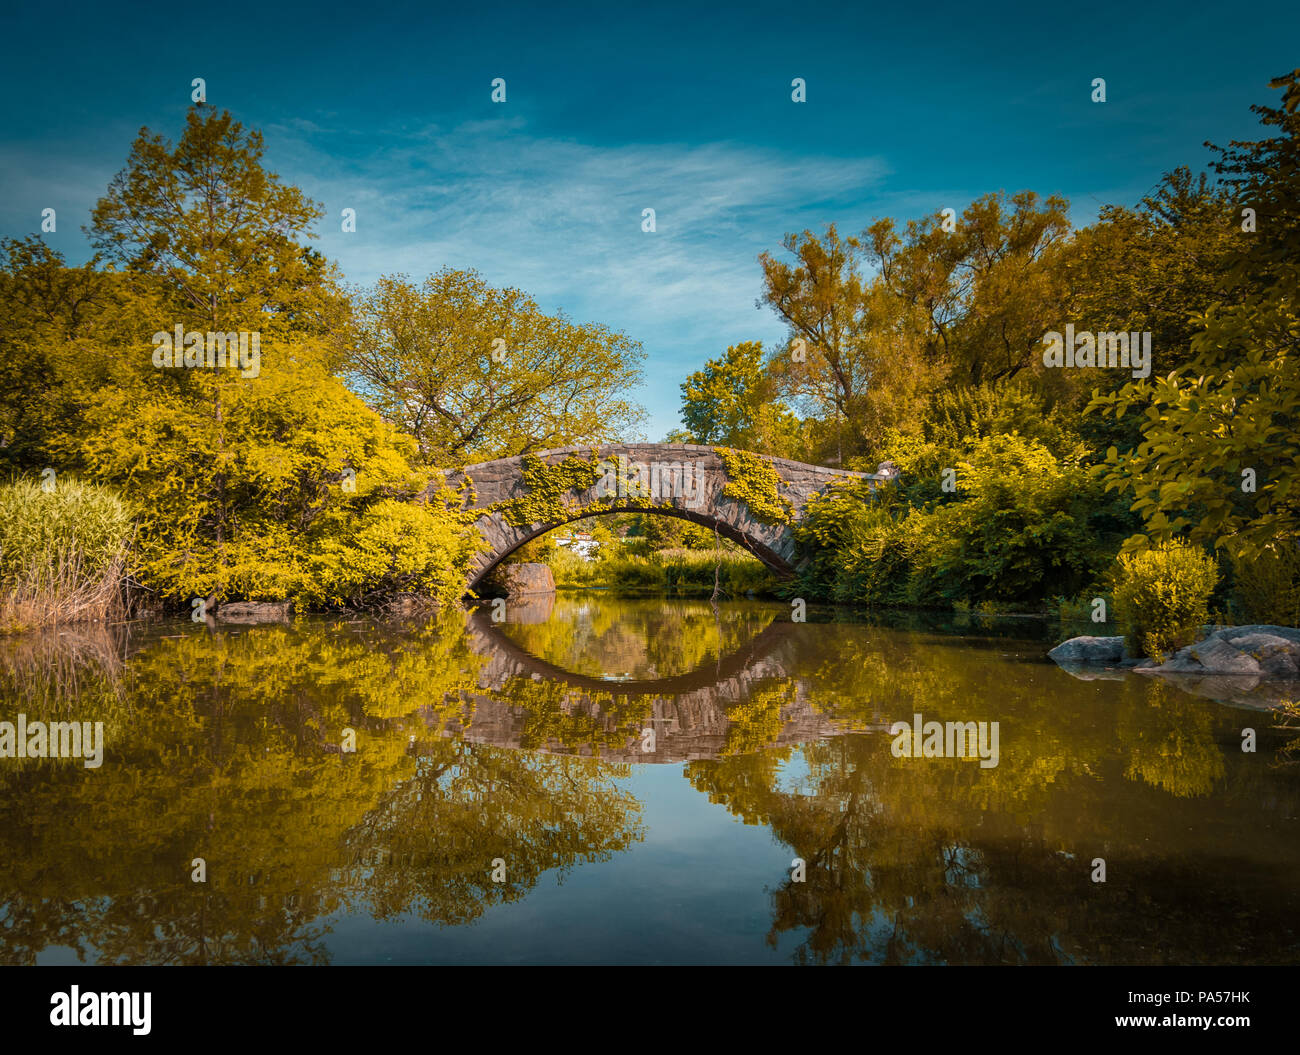 Gapstow bridge in Central Park in autumn reflecting in the water - Stock Image